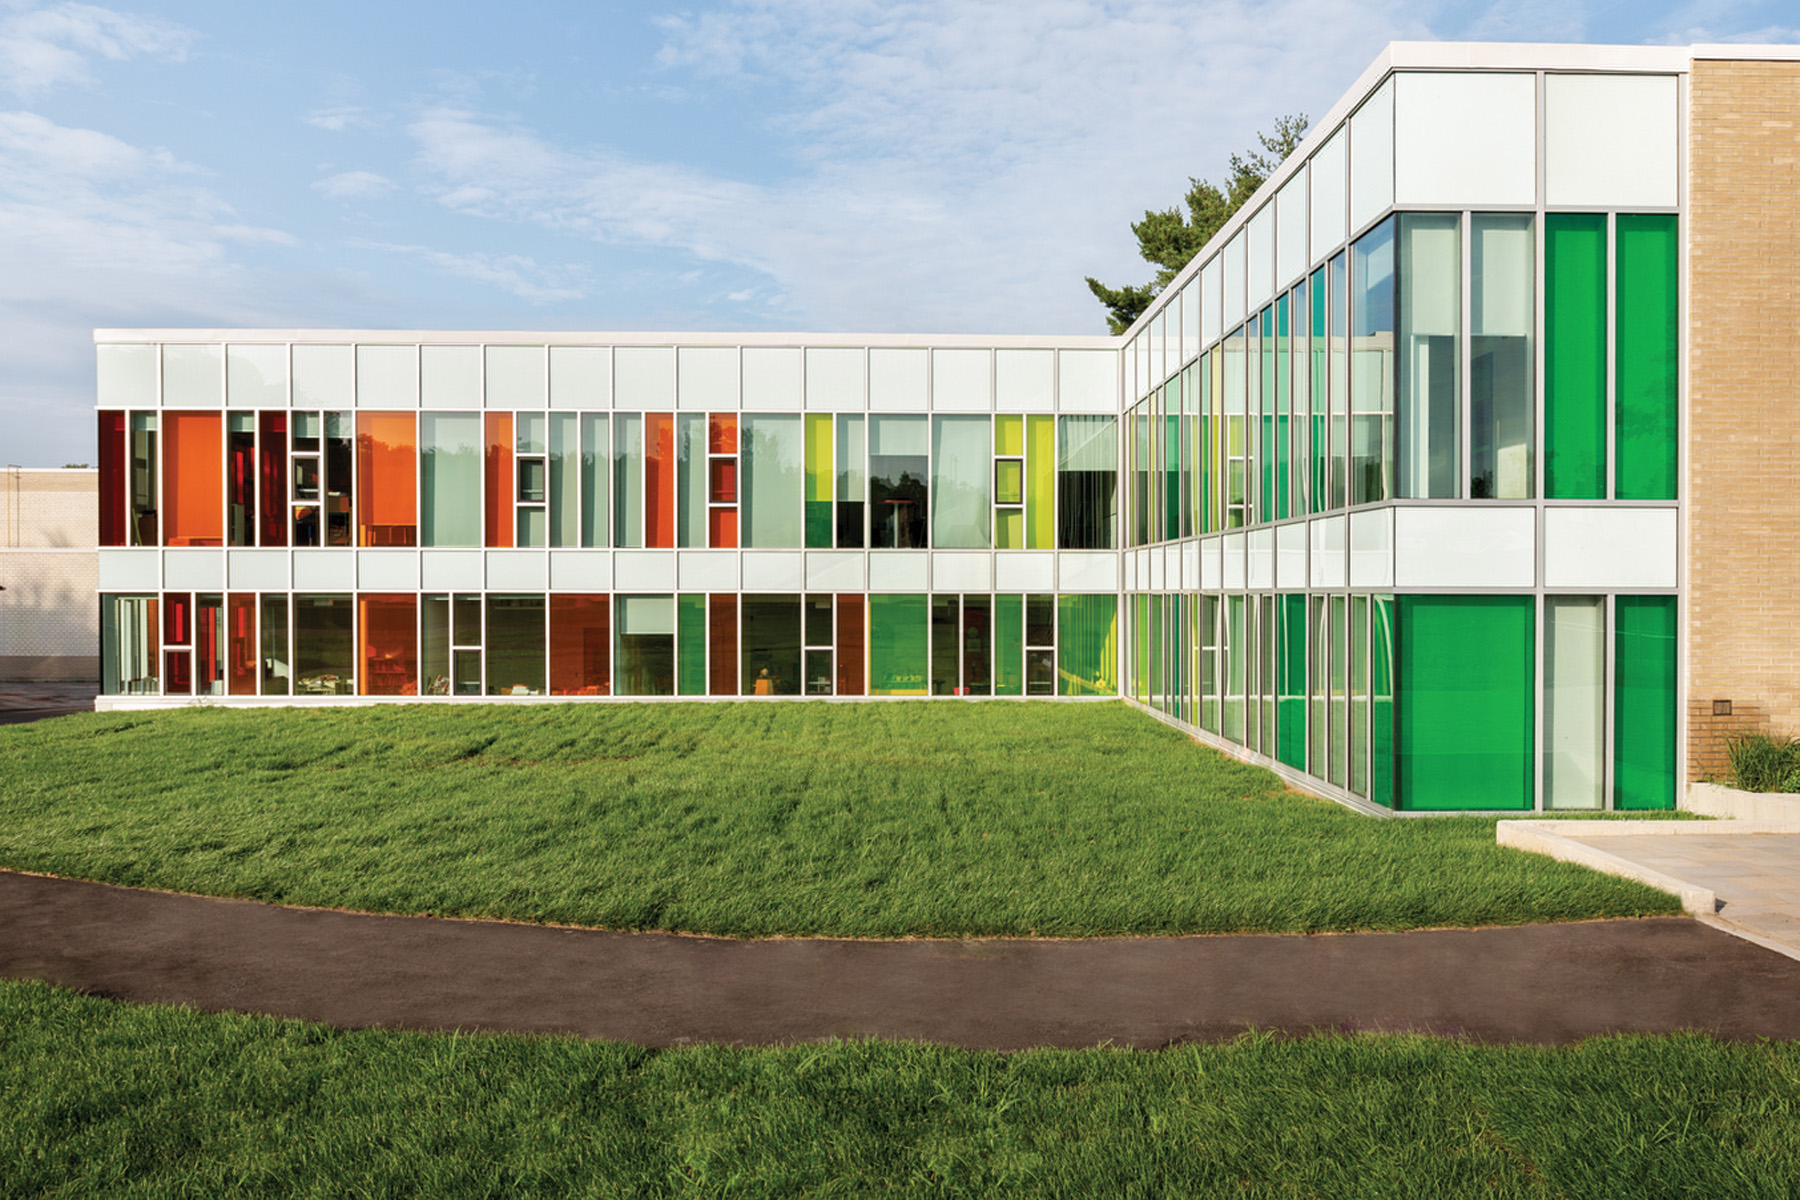 Back elevation of two storey school with orange, yellow and green tinted glass floor to ceiling windows